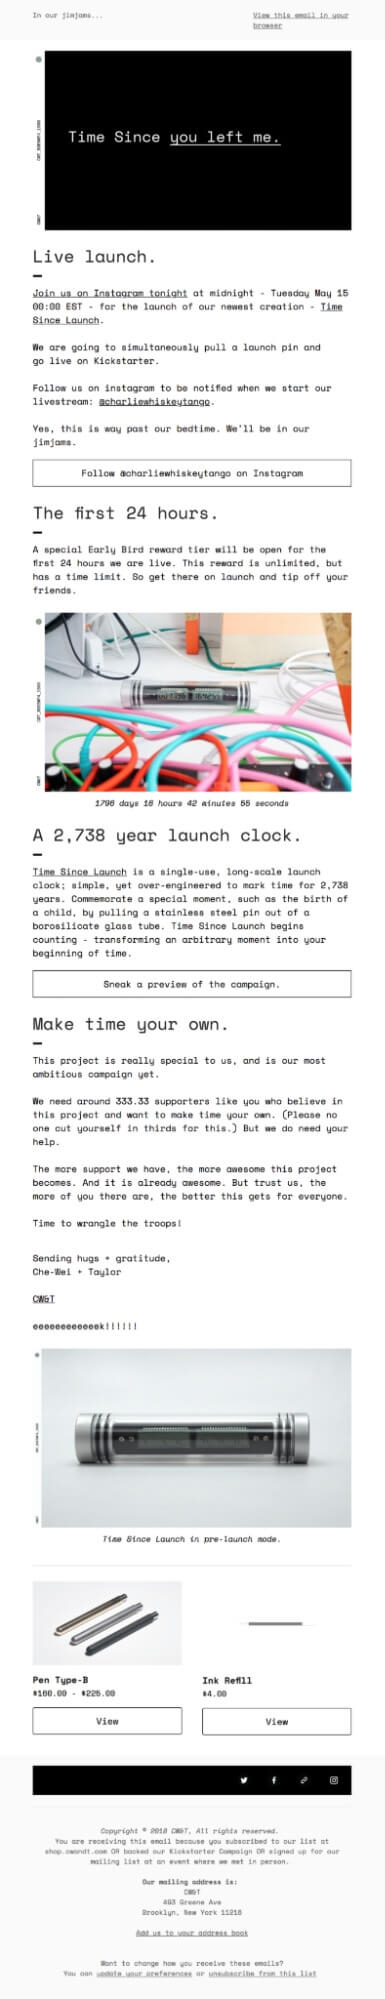 CW and T product launch email